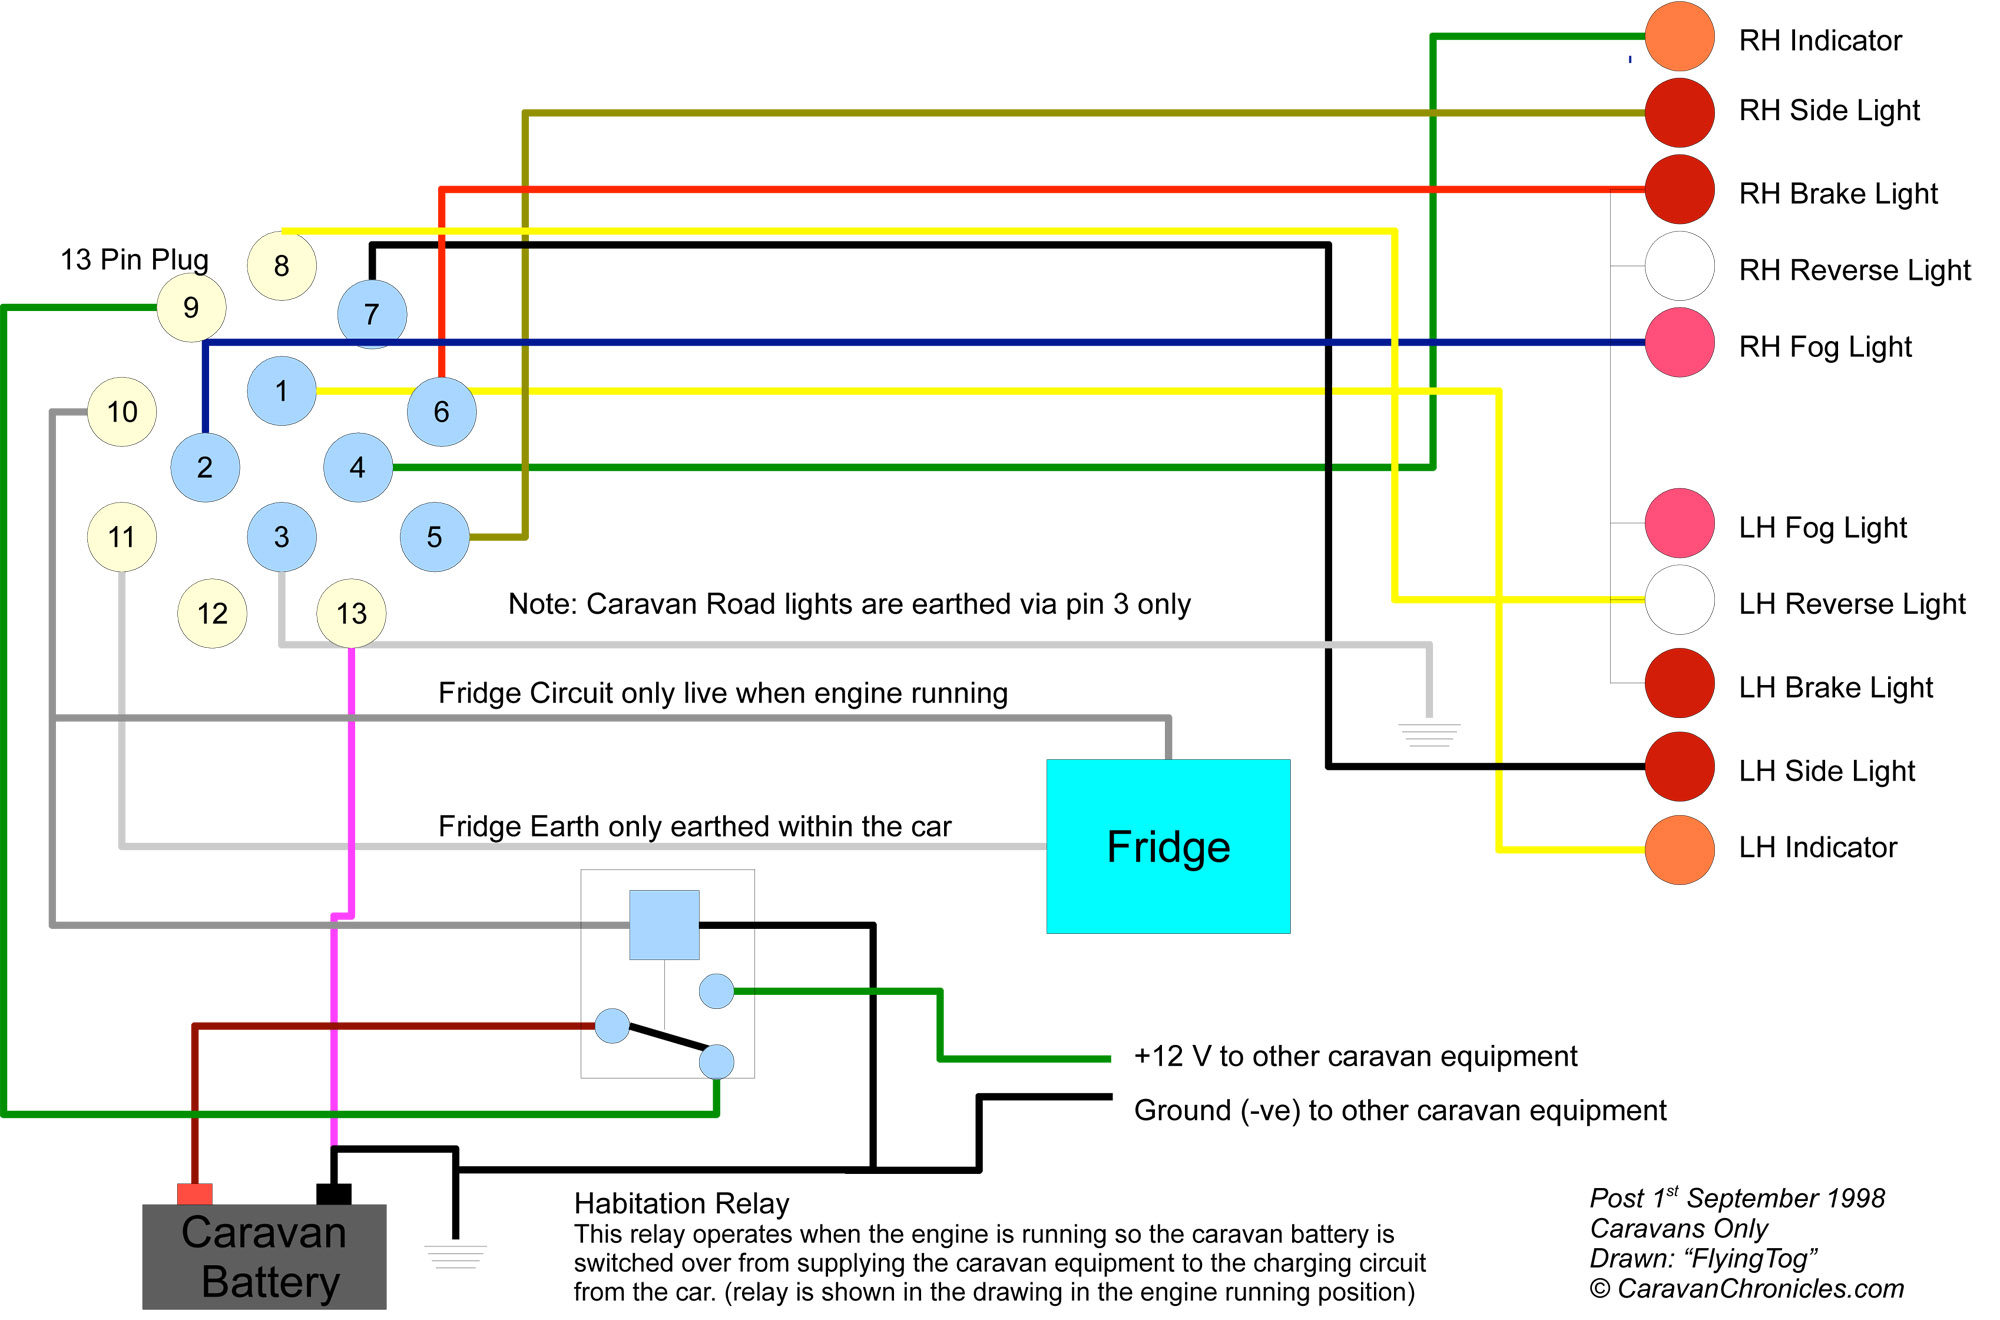 7 Pin Wiring Diagram Auto | Wiring Liry  Flat Trailer Wiring Diagram Ke on 4 flat wiring harness, 4 flat trailer plug, 4 wire trailer diagram, 4 flat trailer cover, 4 wire harness diagram, 4 flat trailer connector diagram, 4 flat trailer wire, tail light converter diagram, trailer light diagram, peterbilt suspension diagram,